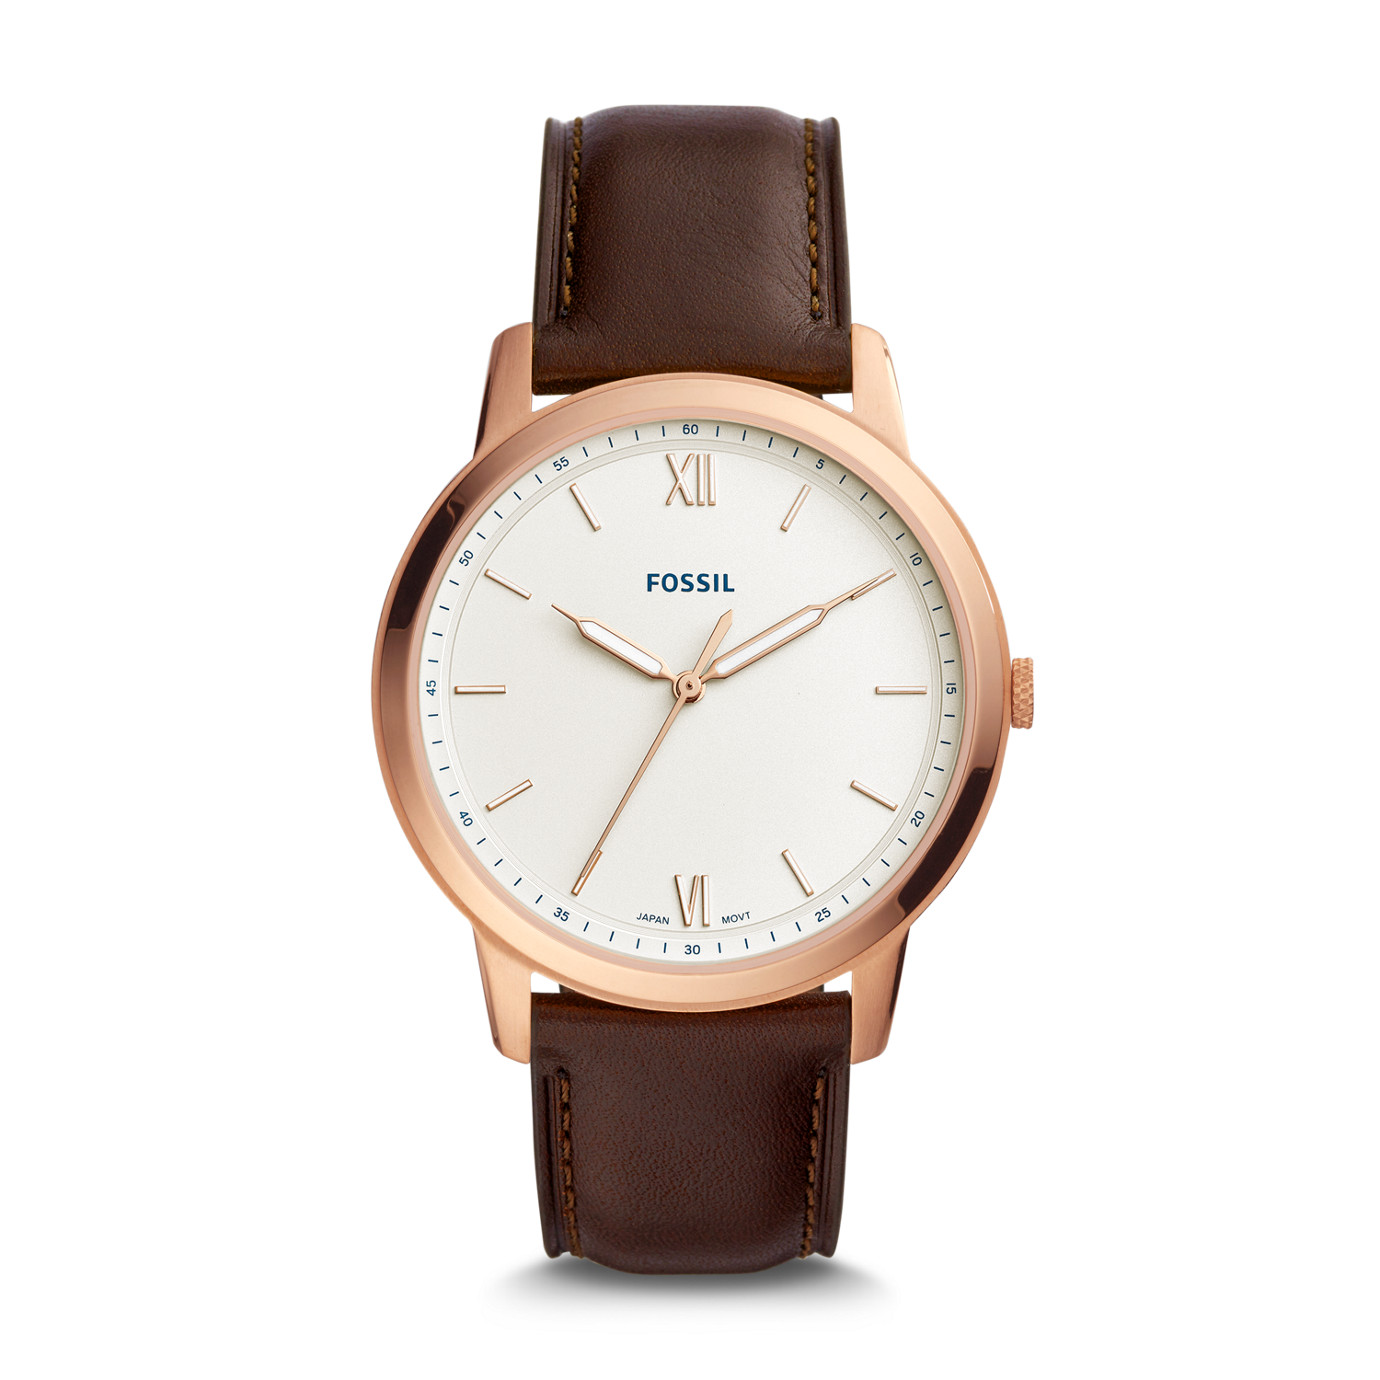 The Minimalist Three-Hand Java Leather Watch